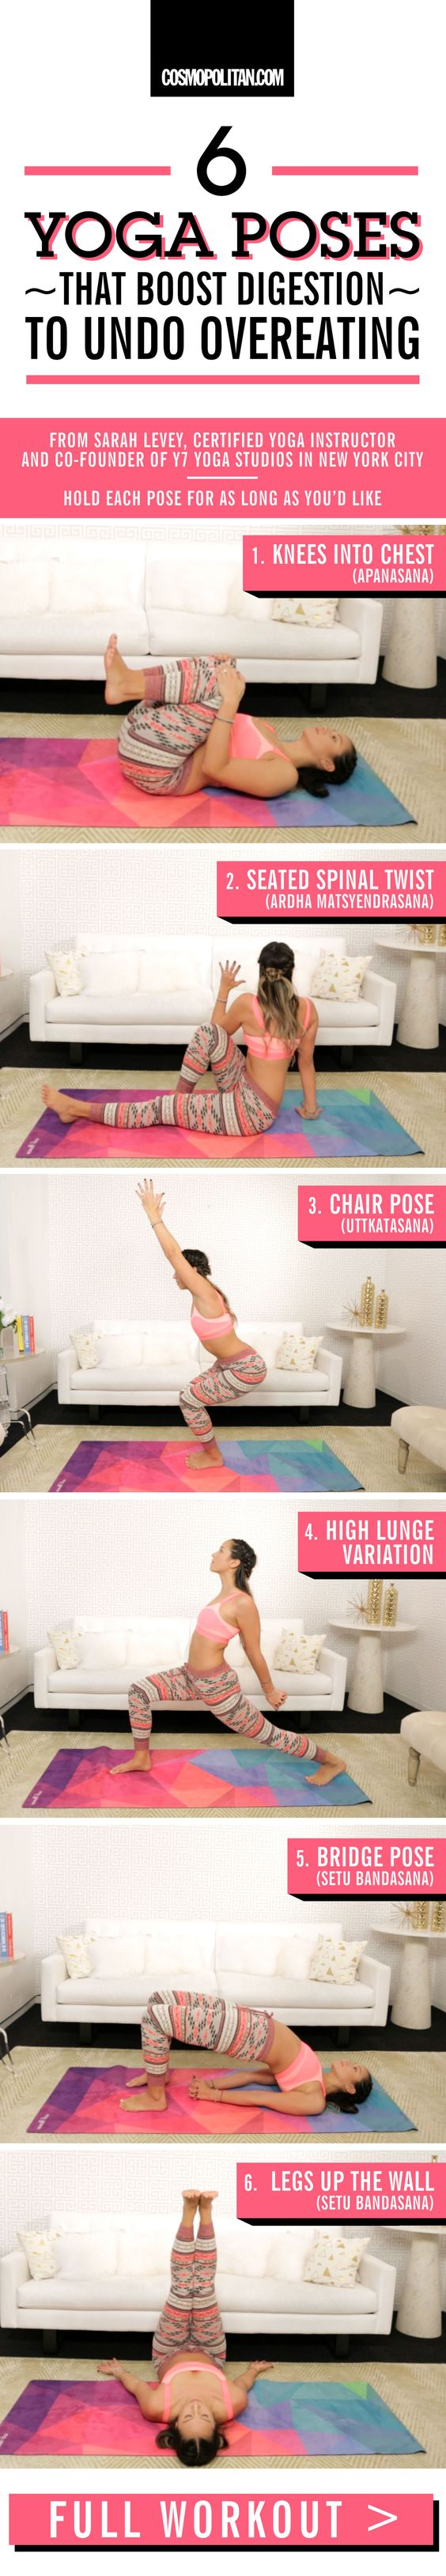 6 Yoga Inspired Poses That Undo Overeating 6 Yoga Inspired Poses That Undo Overeating